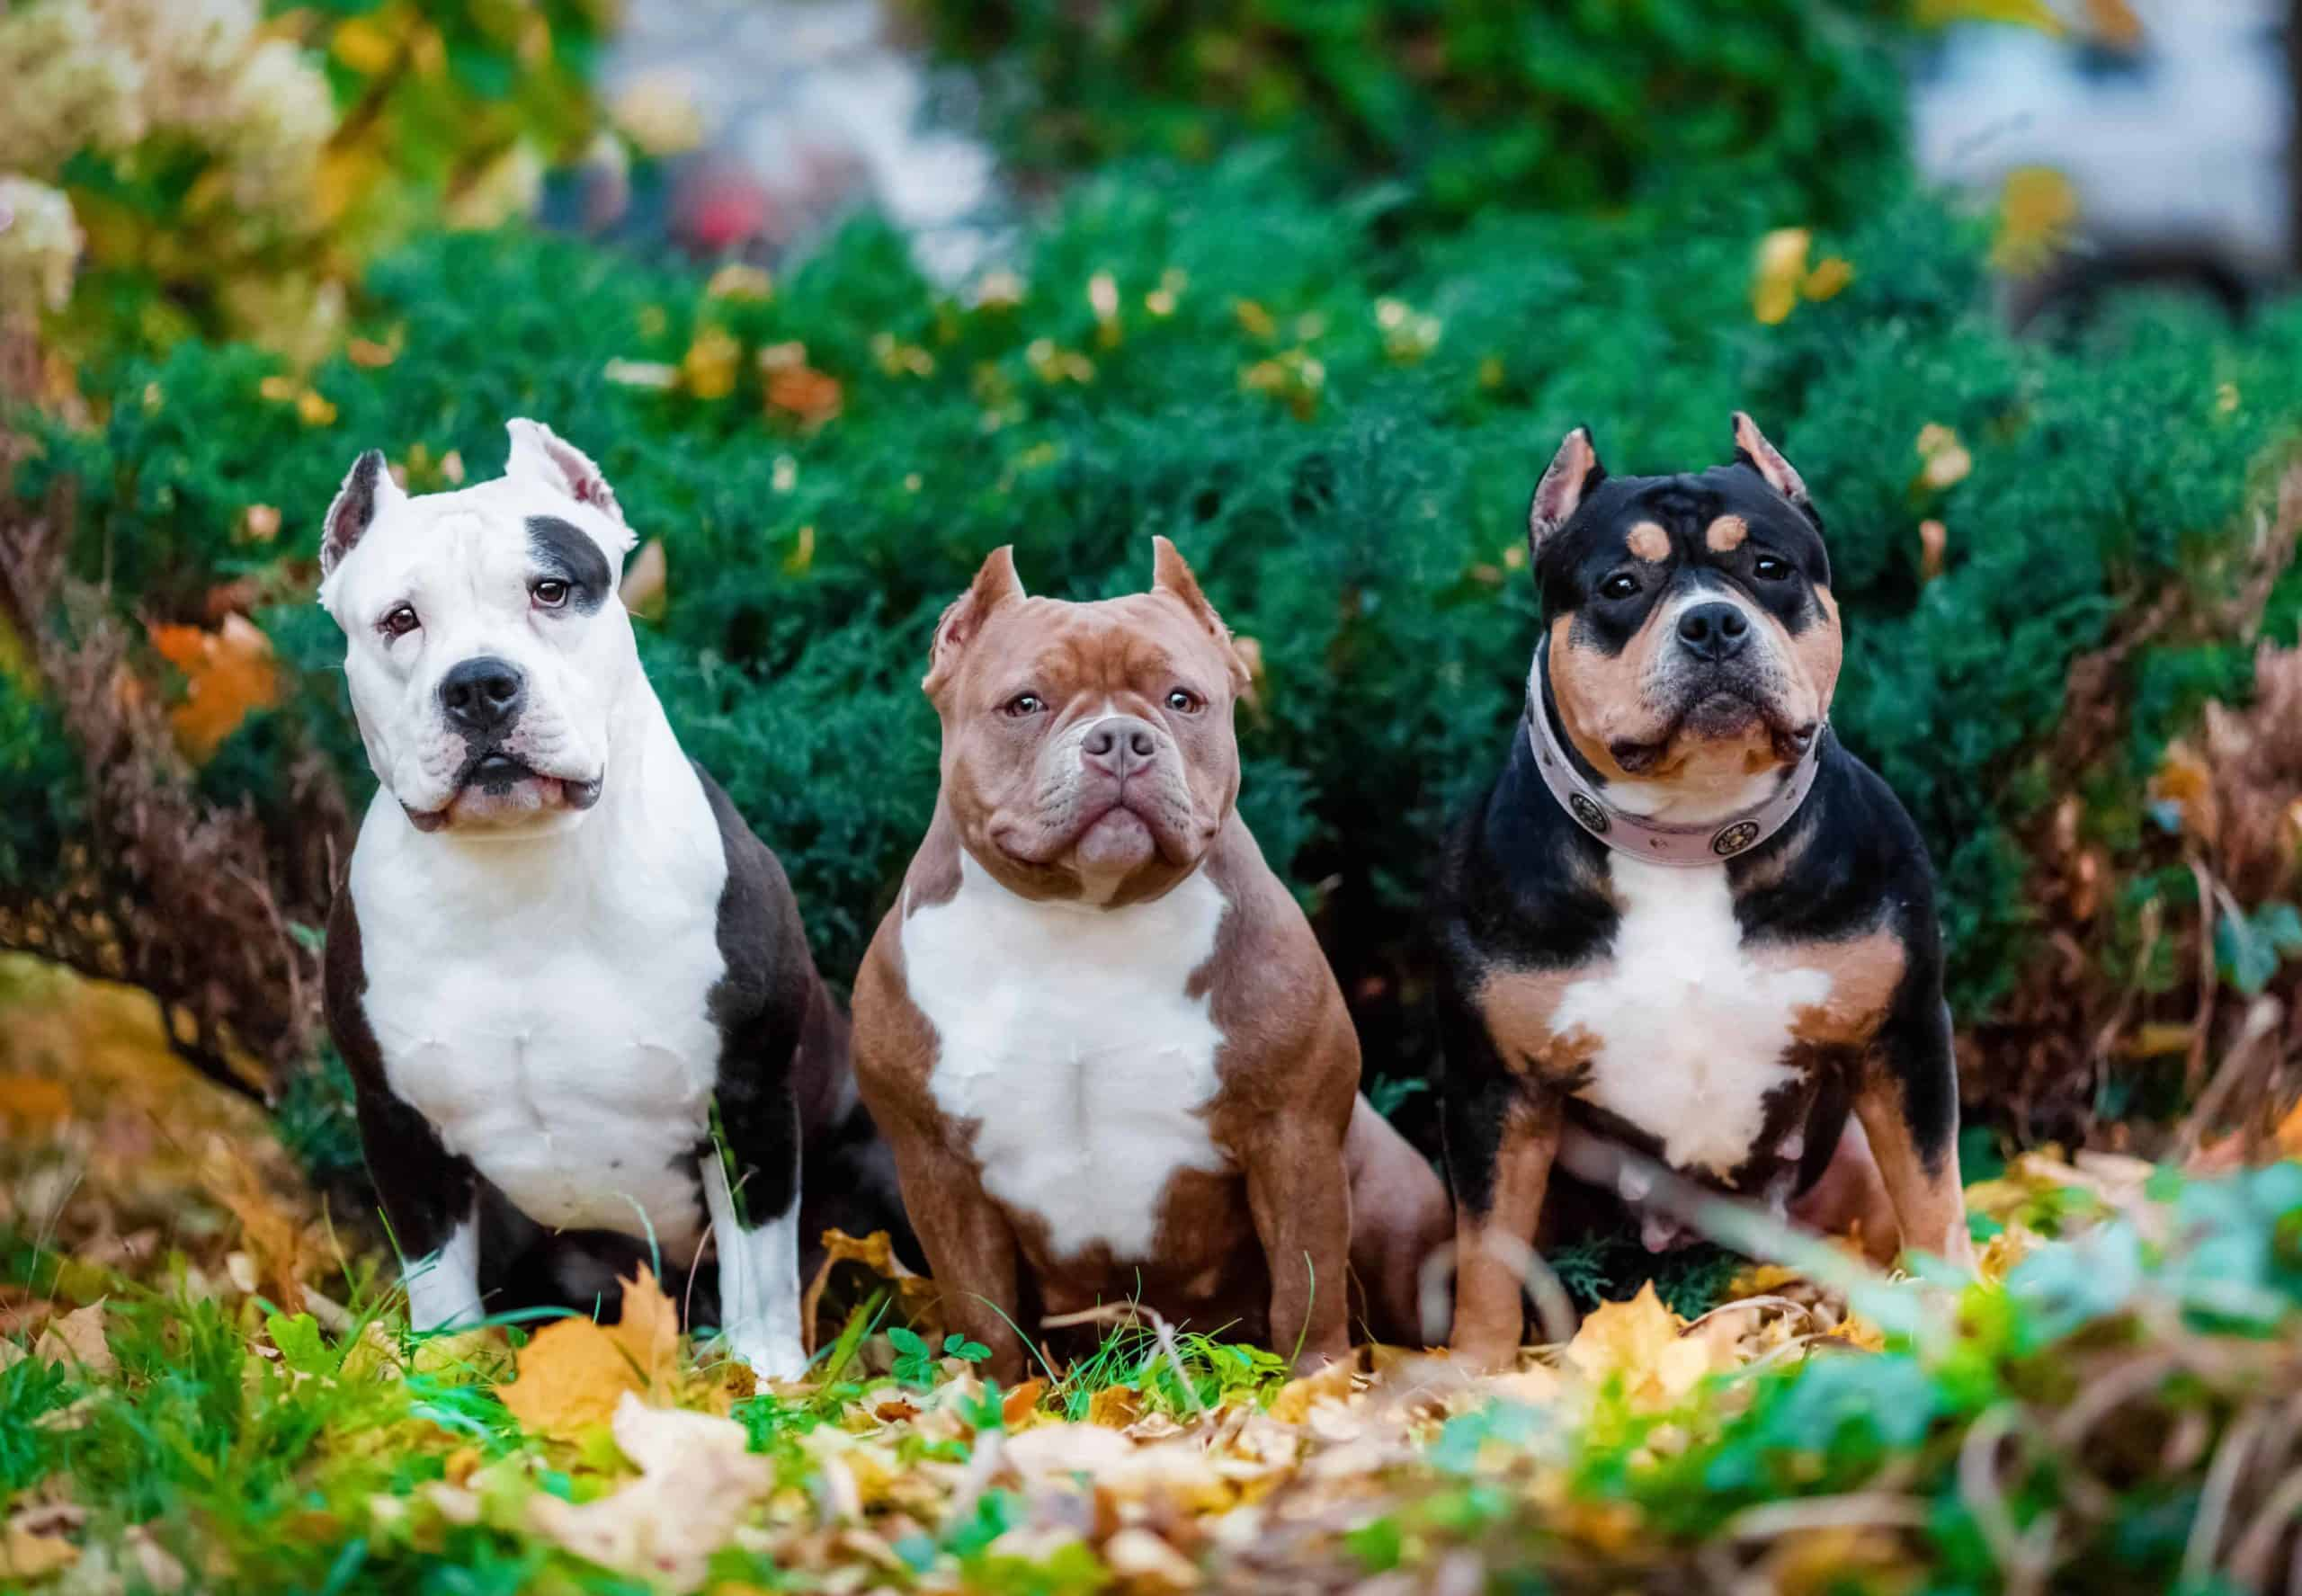 Three colors of American Bully XL puppies. Despite their ferocious looks, the American Bully XL is a kind, friendly, and affectionate dog. According to the United Kennel Club, aggression towards humans is uncharacteristic and undesirable.